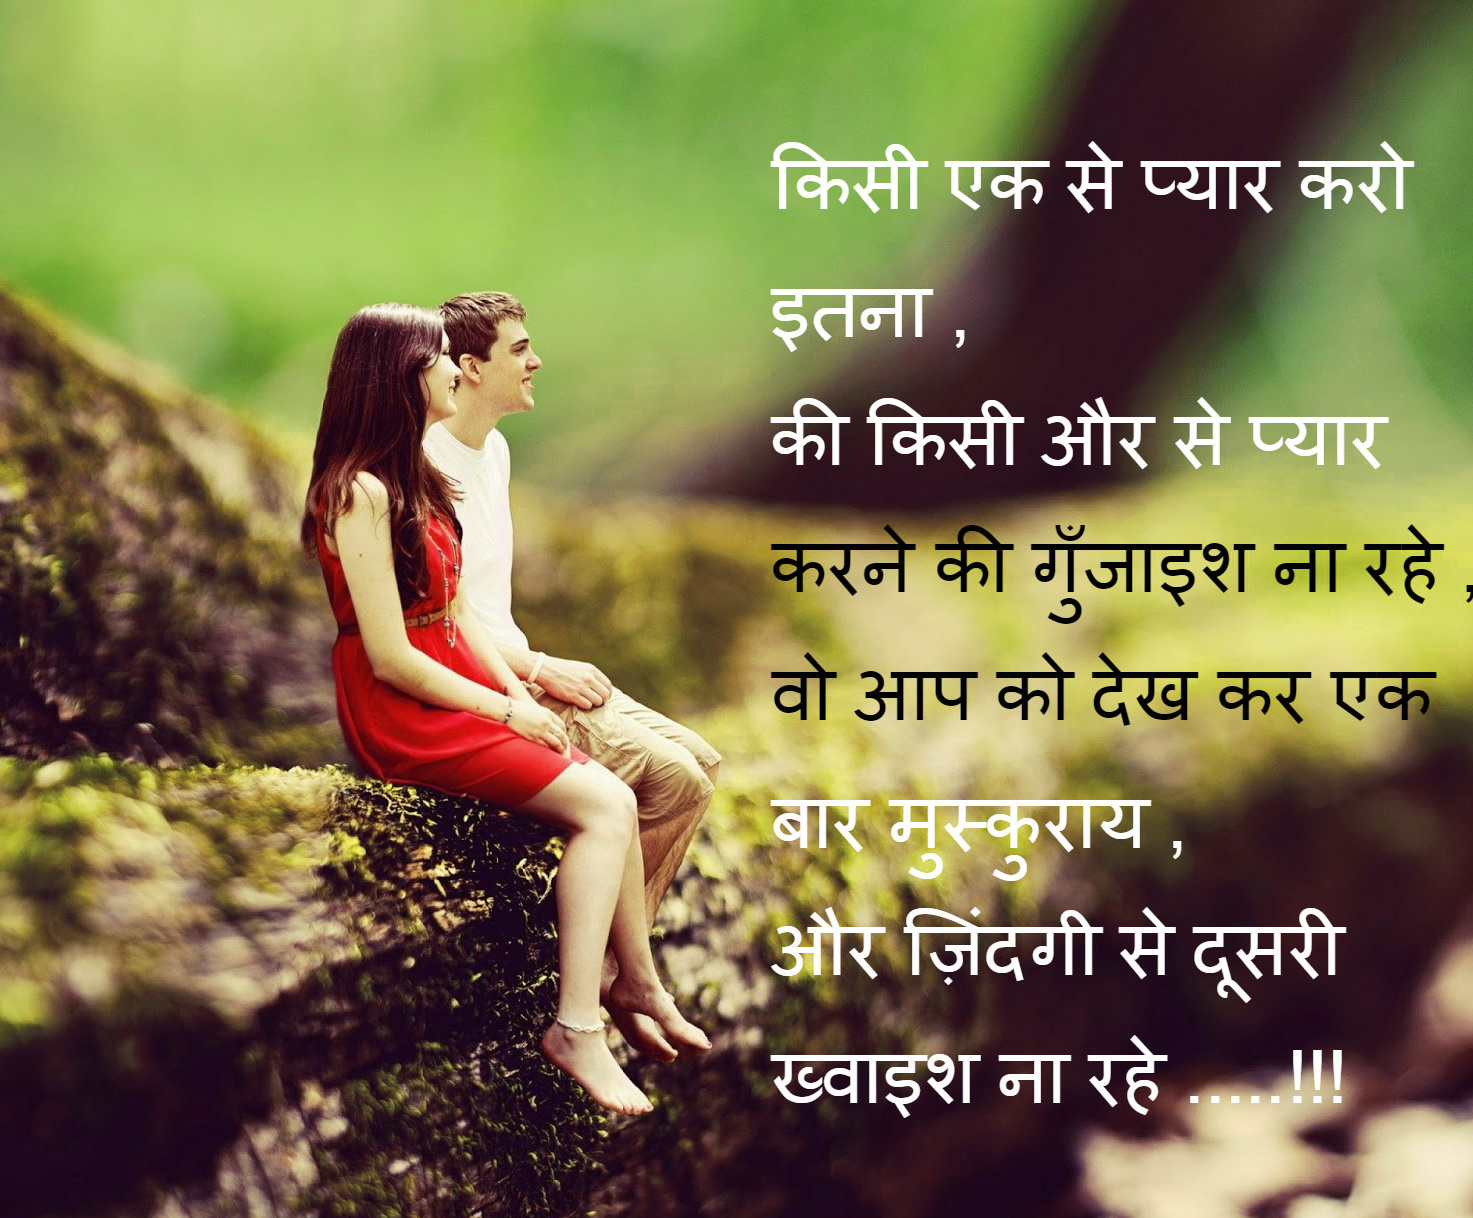 Shayari Wallpaper 48